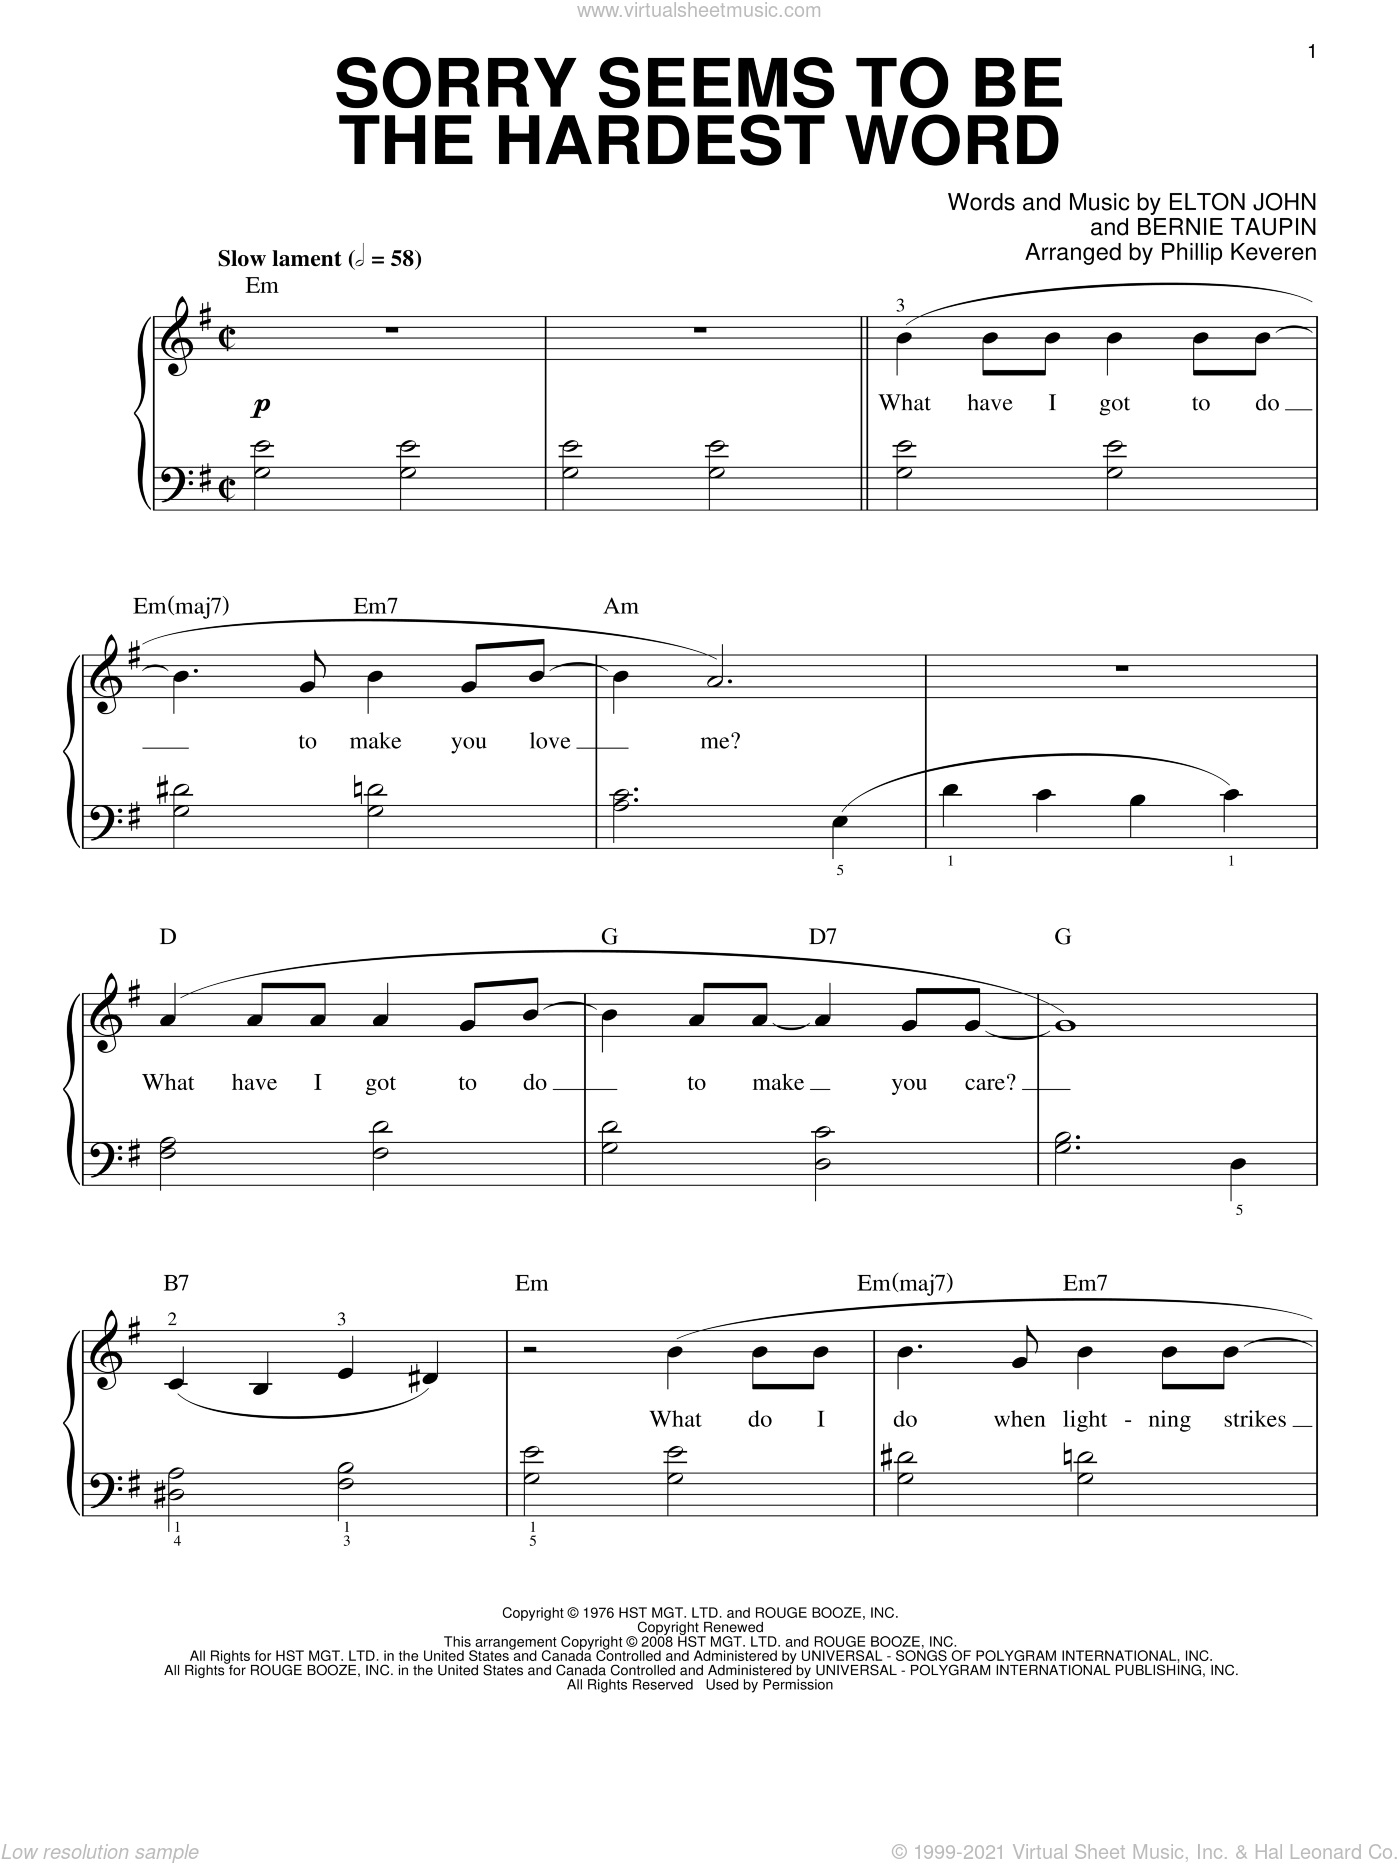 Sorry Seems To Be The Hardest Word sheet music for piano solo by Elton John, Phillip Keveren and Bernie Taupin, intermediate skill level